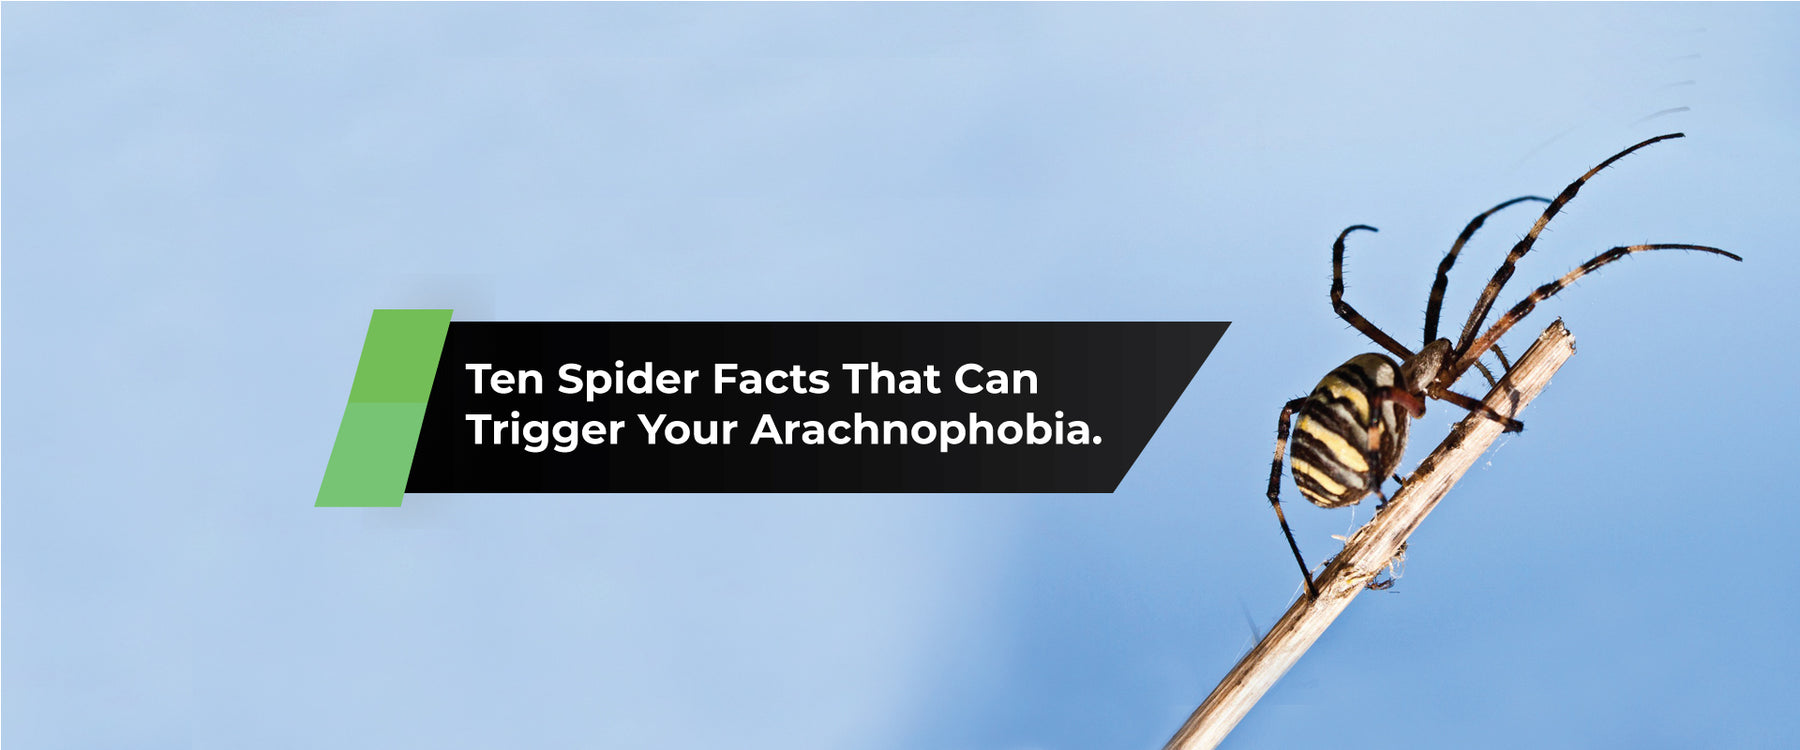 Ten Spider Facts That Can Trigger Your Arachnophobia